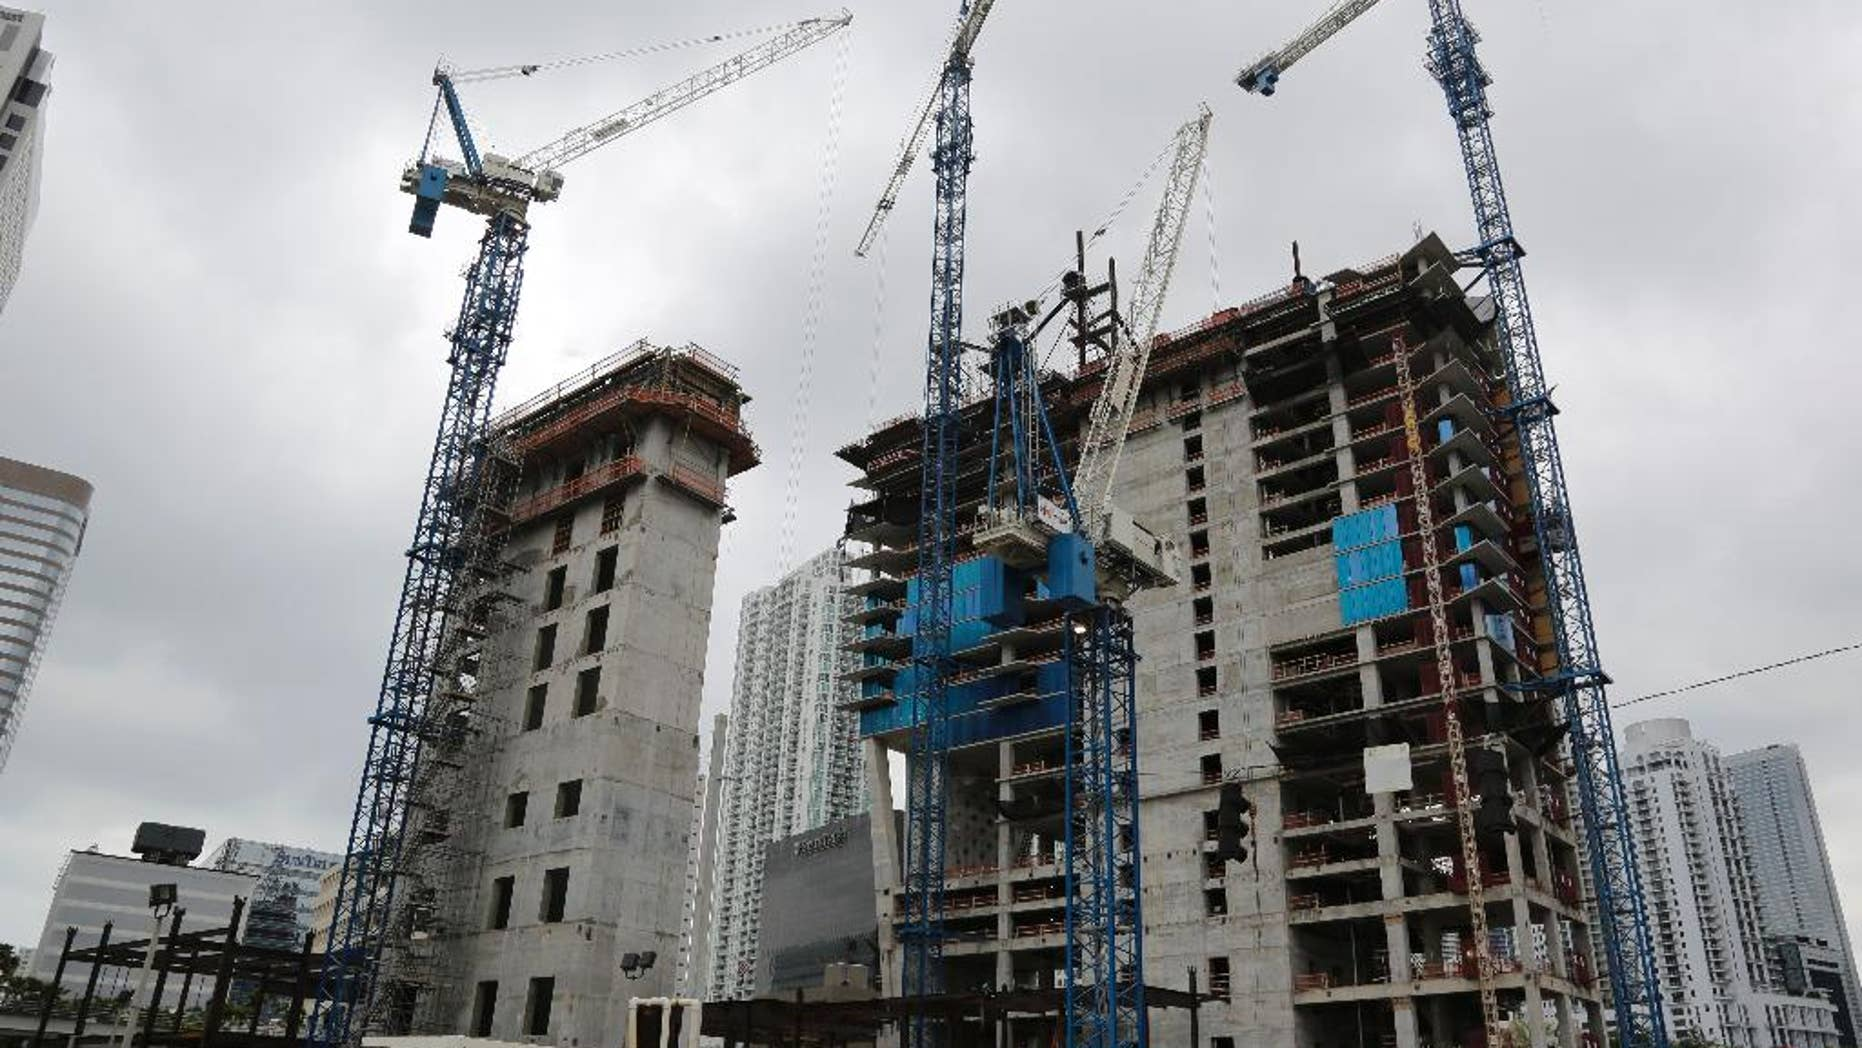 In this Friday, May 16, 2014 photo, cranes fill the skyline at the Brickell CityCentre construction site located in the center of the Brickell financial district in downtown Miami. The project is mixed use office, residential, hotel, retail and entertainment space. The Commerce Department reports on U.S. construction spending in May on Tuesday, July 1, 2014. (AP Photo/Lynne Sladky)